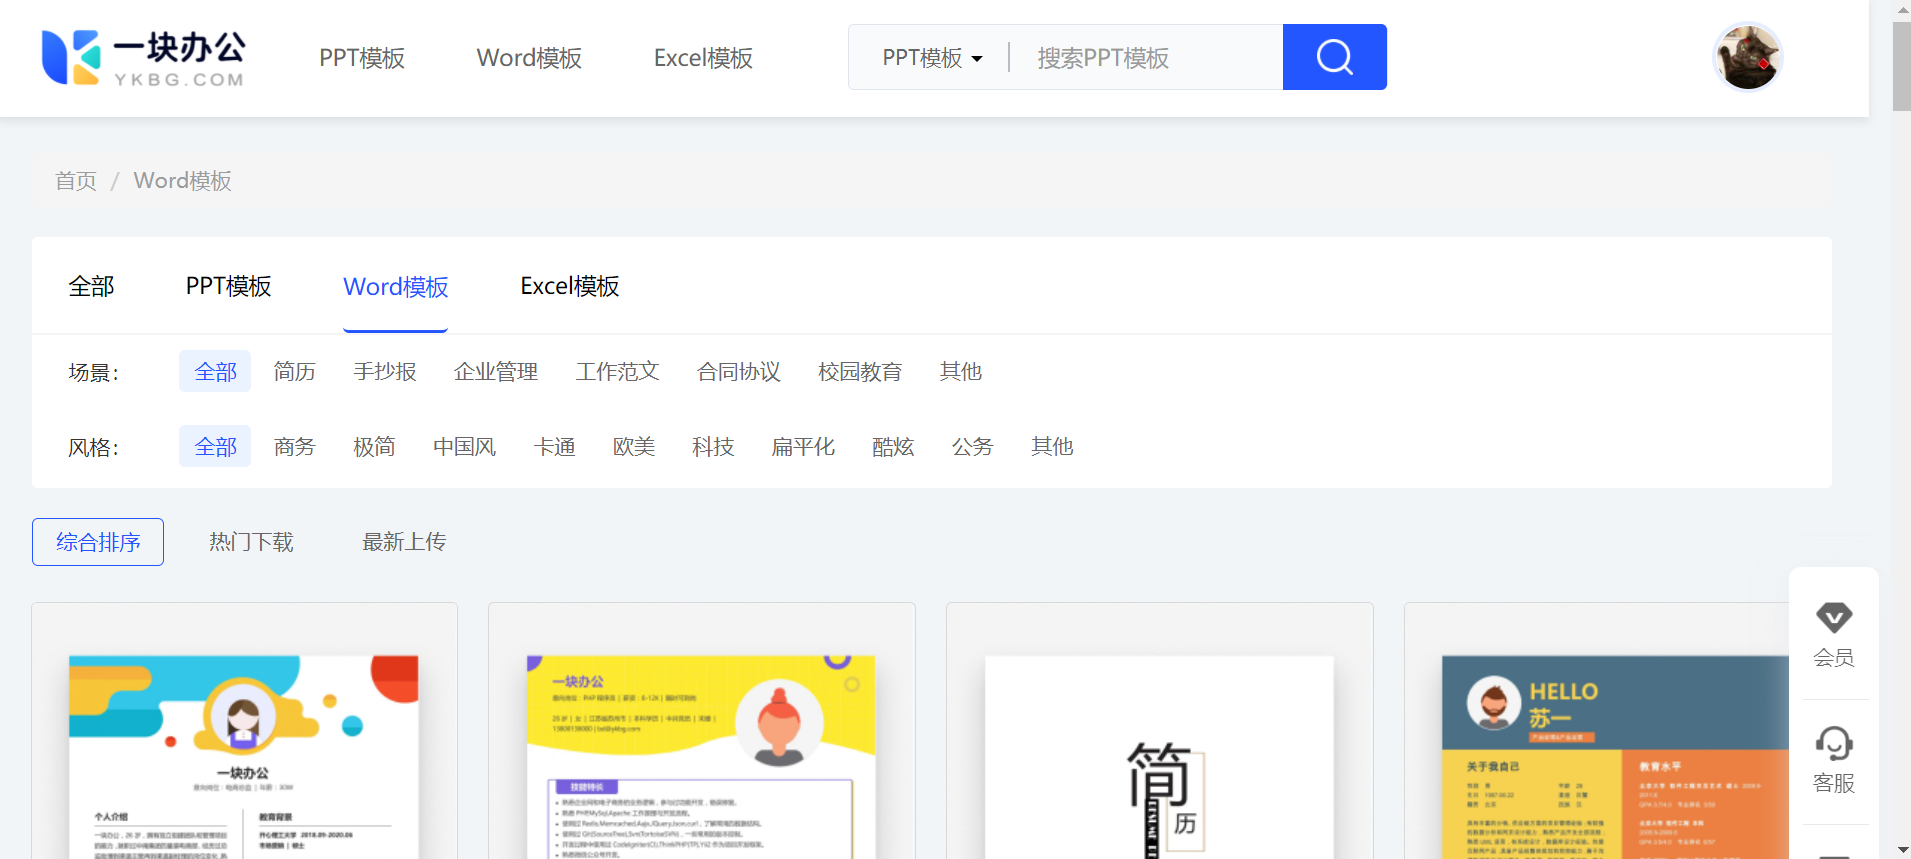 Word模板专区.png